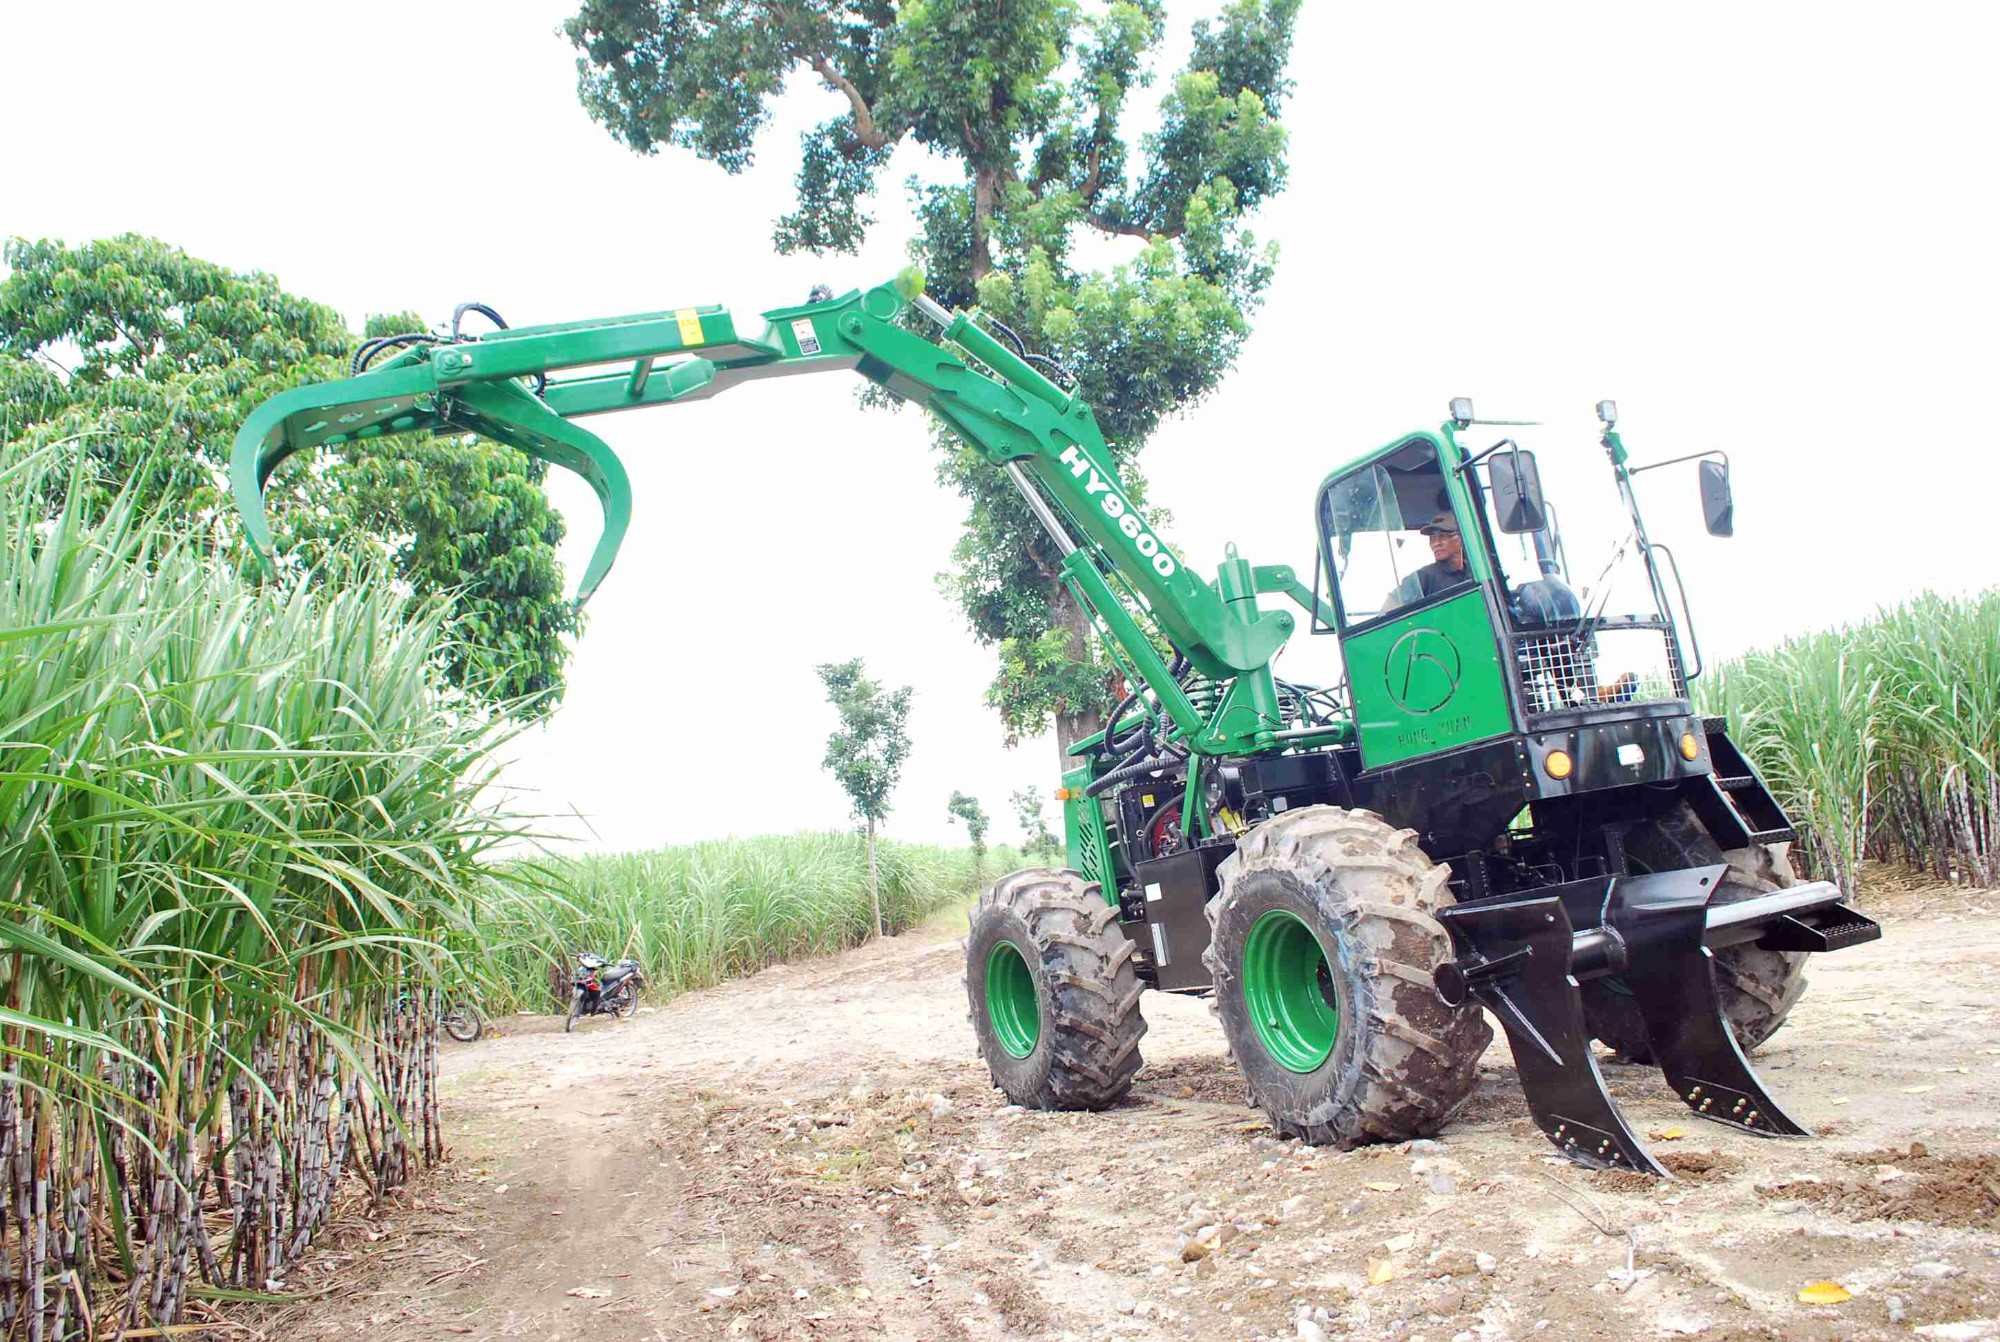 Sales 4 WD Sugarcane Loader, Buy 4 WD Sugarcane Loader, 4 WD Sugarcane Loader Factory, 4 WD Sugarcane Loader Brands